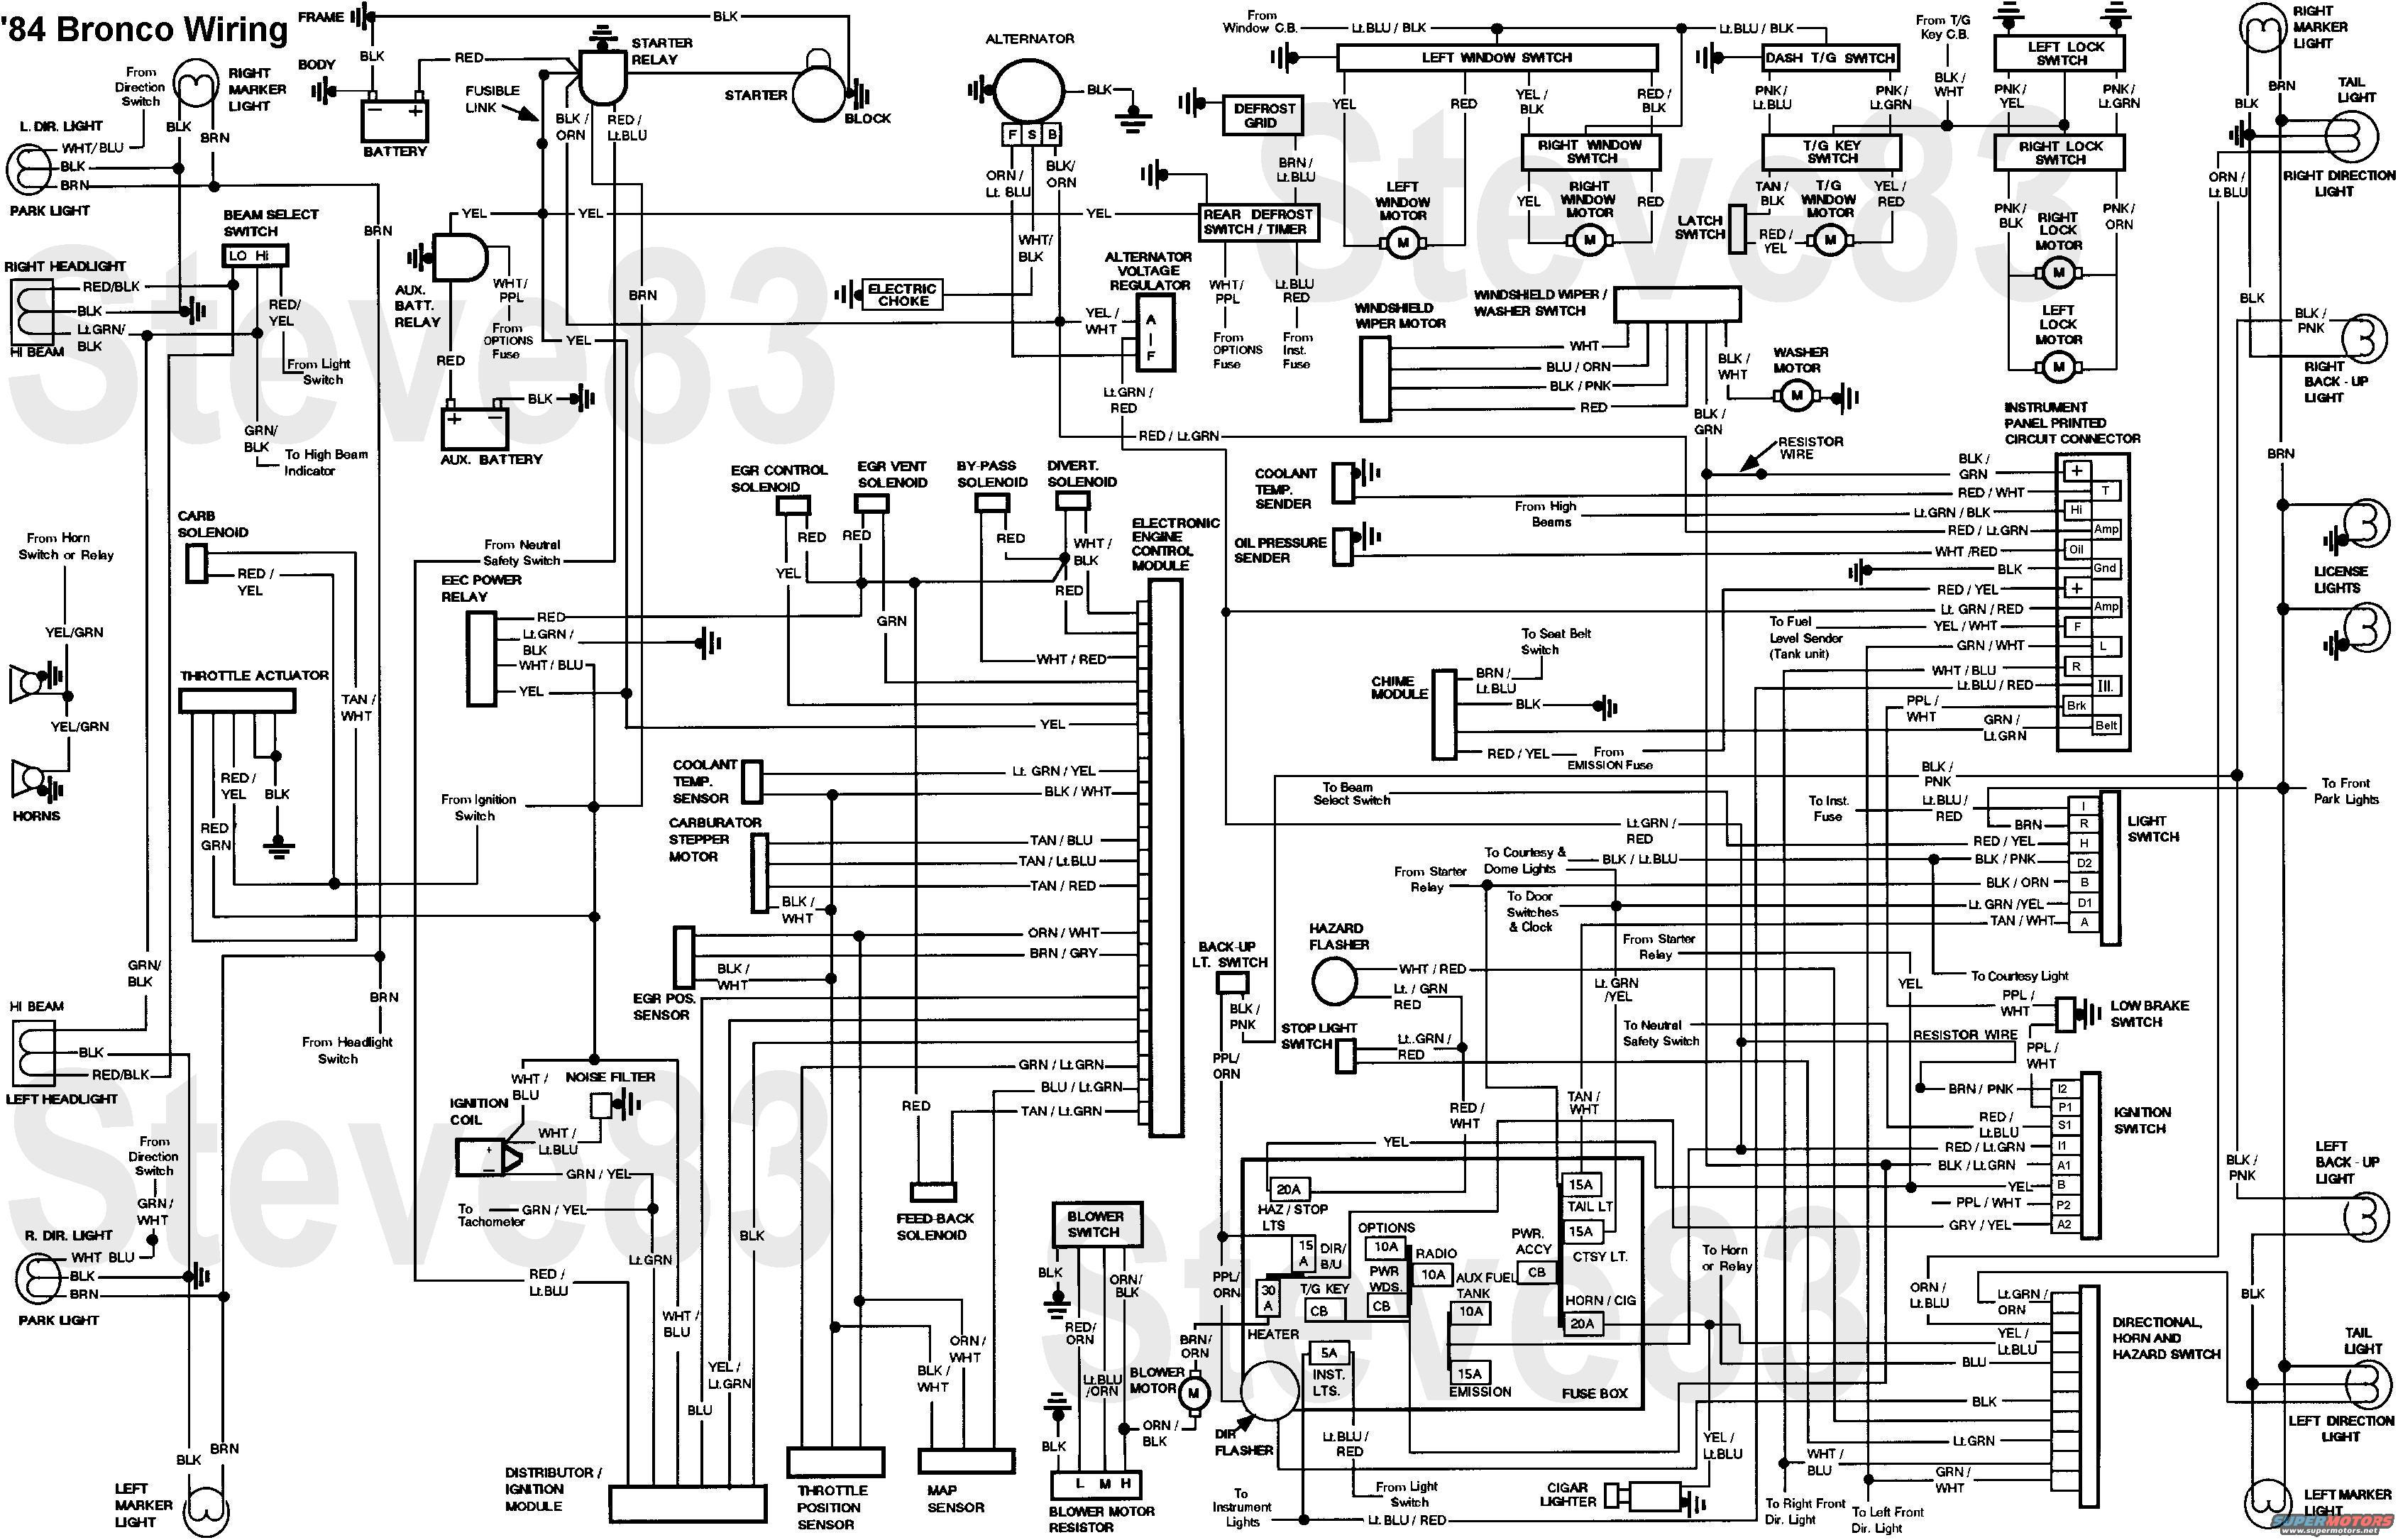 Saab Stereo Wiring Harness Free Download Diagram Schematic Auto Filter Housing In Addition 2002 Dodge Intrepid Radio Kubota 27 Images